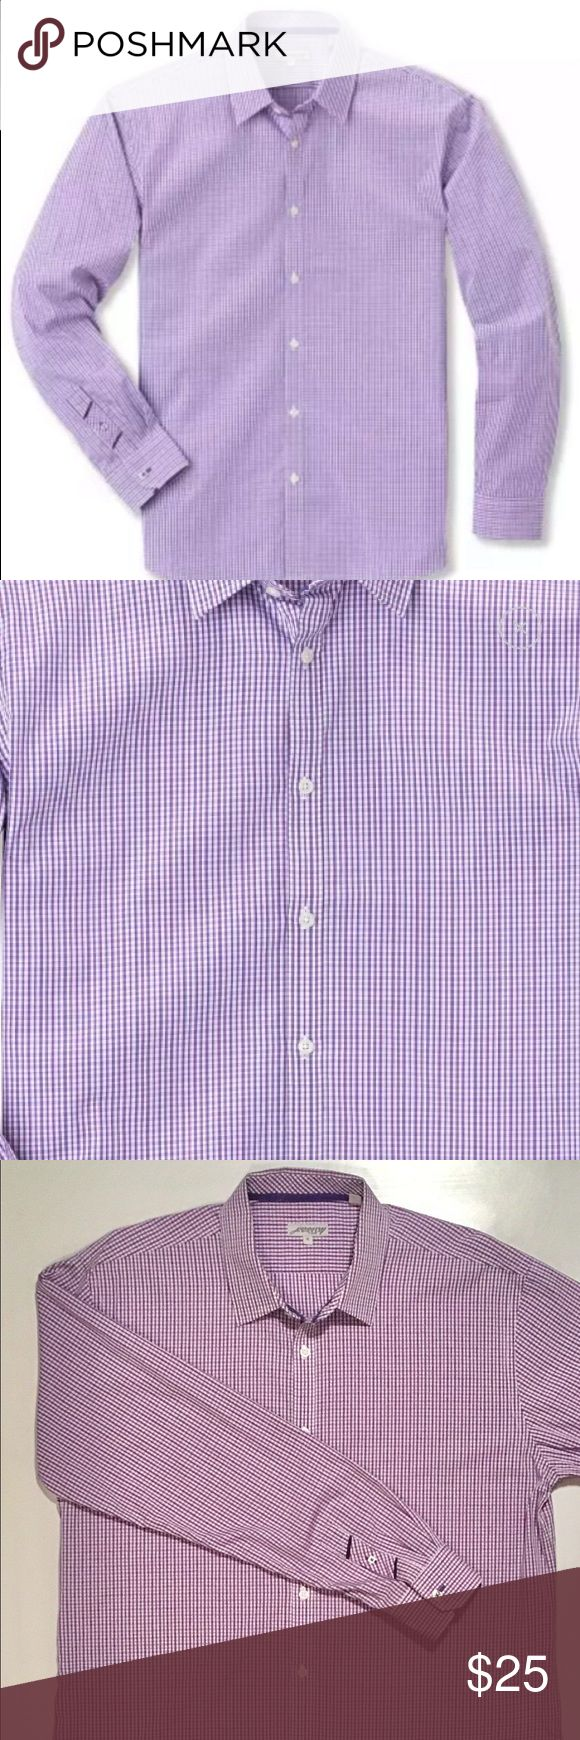 L/S Comfort Dress Shirt By Jeremy Argyle Purchased through trunk club. I've worn this shirt a maximum of 5 times. I have lost weight so the shirt is simply too big on me but it is in great condition. The first 2 pictures are off of the trunk club website and are representative of the color which is 534 purple gingham. The 3rd picture is the actual shirt in my possession. jeremy argyle Shirts Casual Button Down Shirts